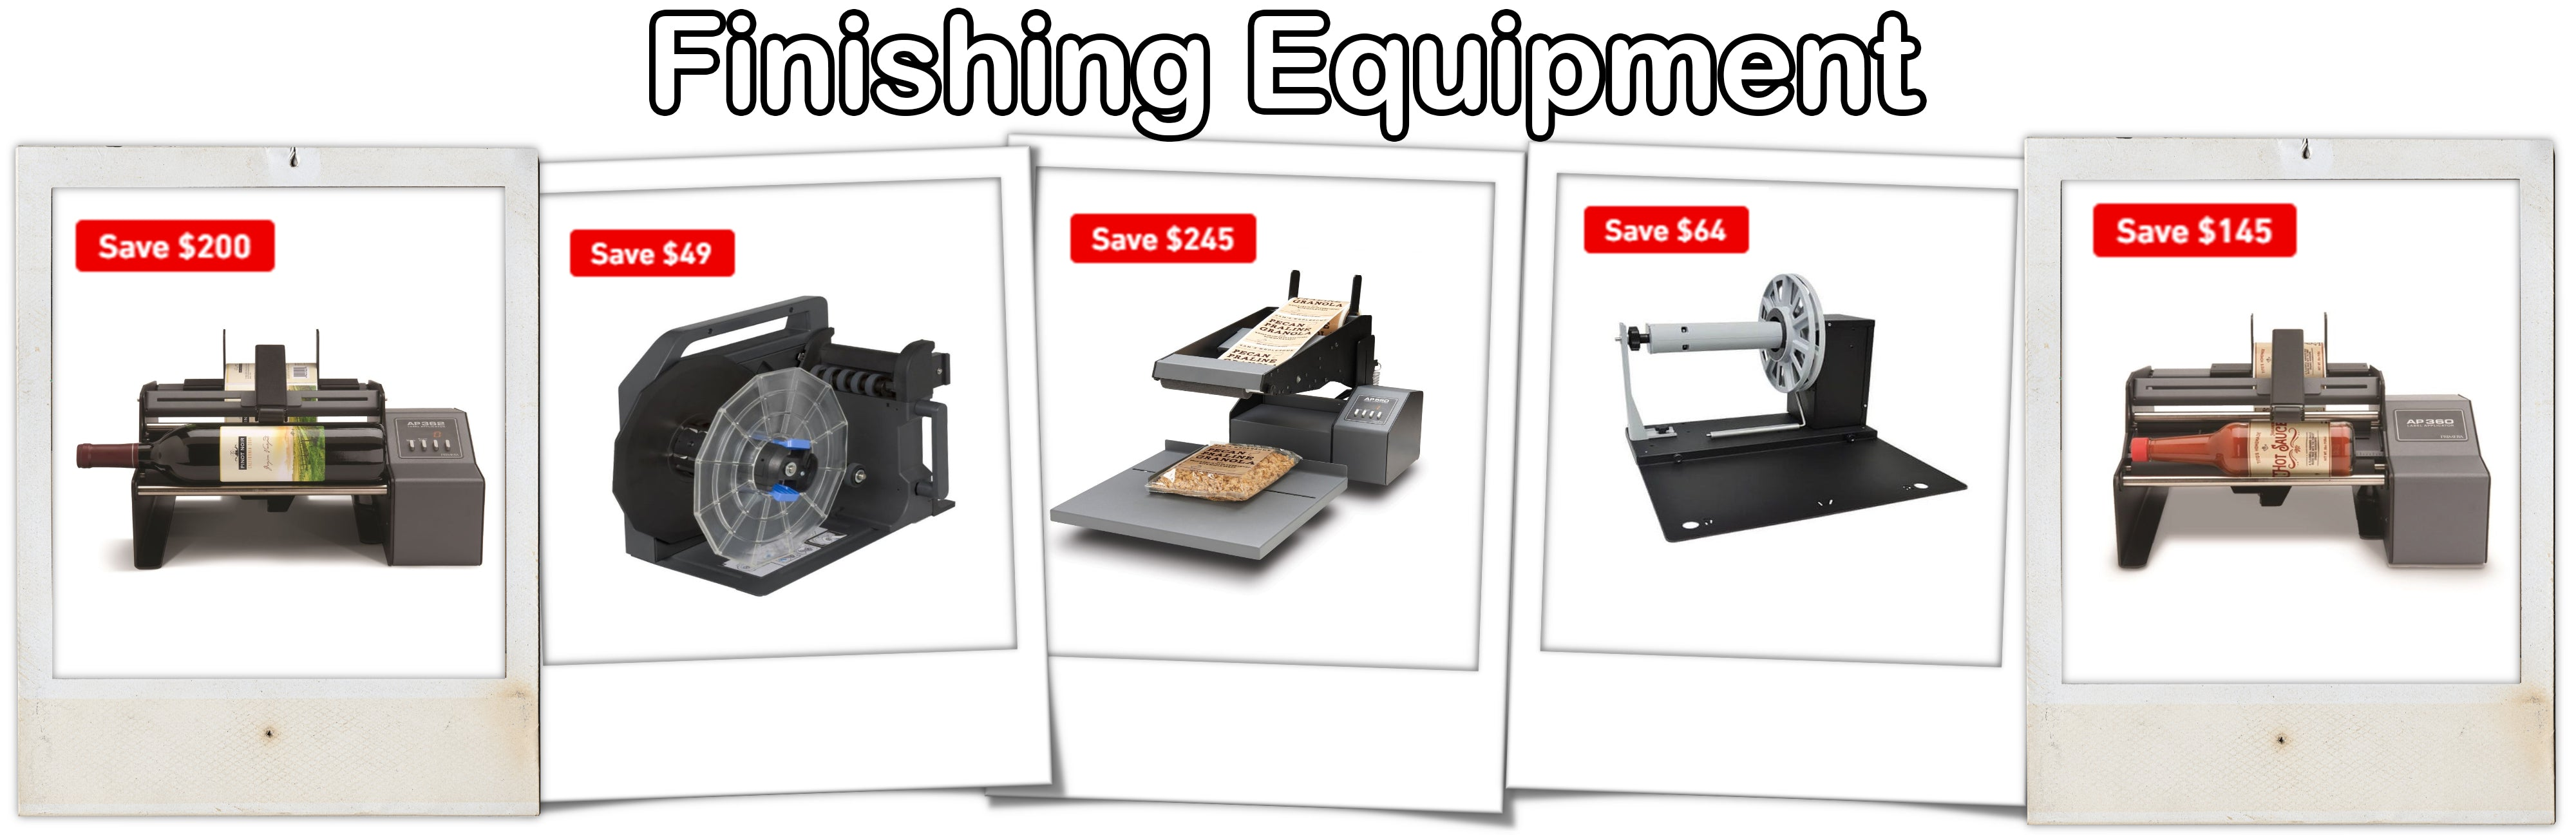 ForeFront Label Solutions - Finishing Equipment Sale